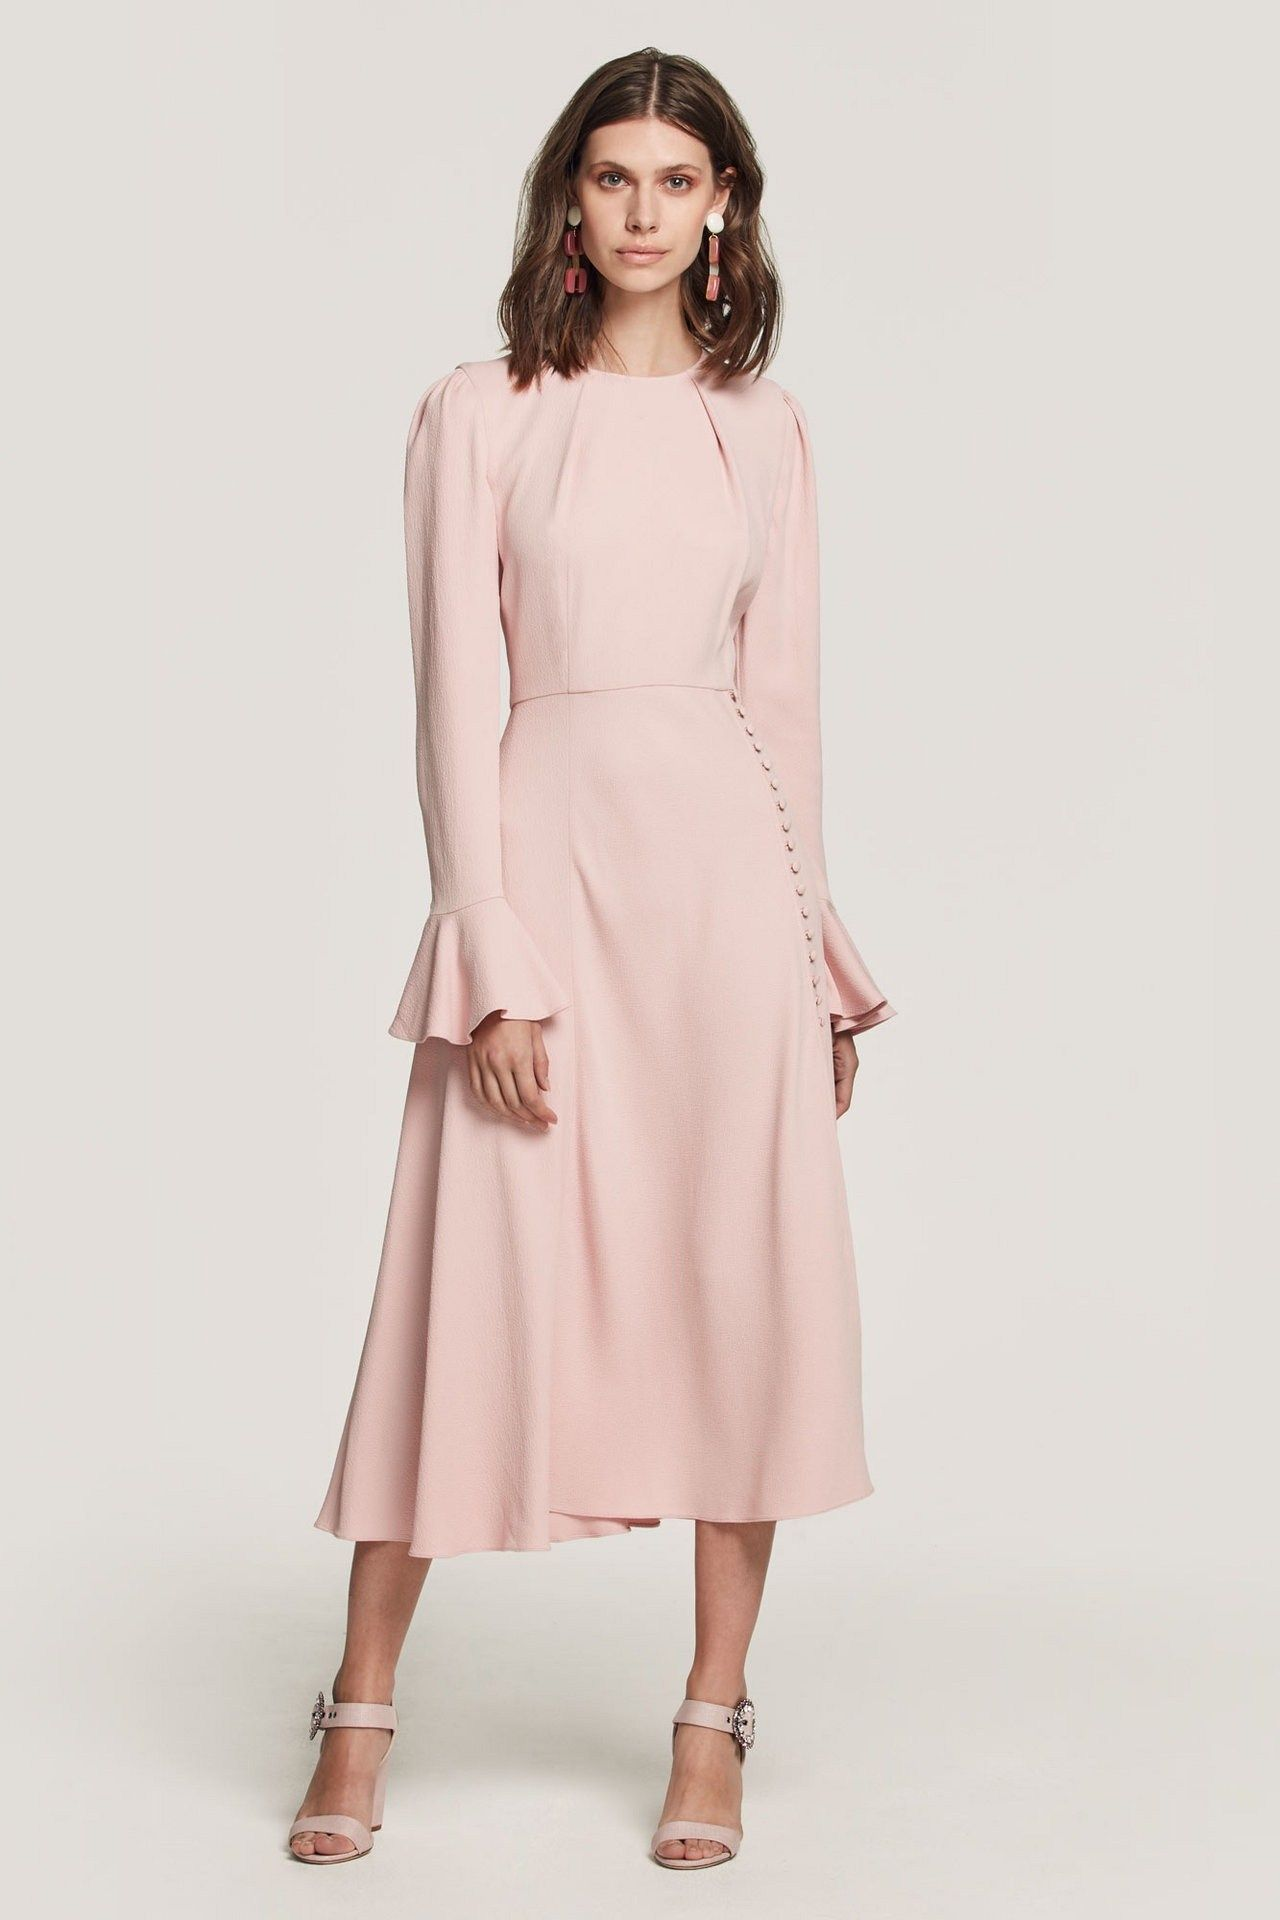 2bb5672d52 In a soft pink crepe, the Yahvi dress is modest and refined with fluted  sleeves, leading to a floaty skirt with button detail and split to give  great ...